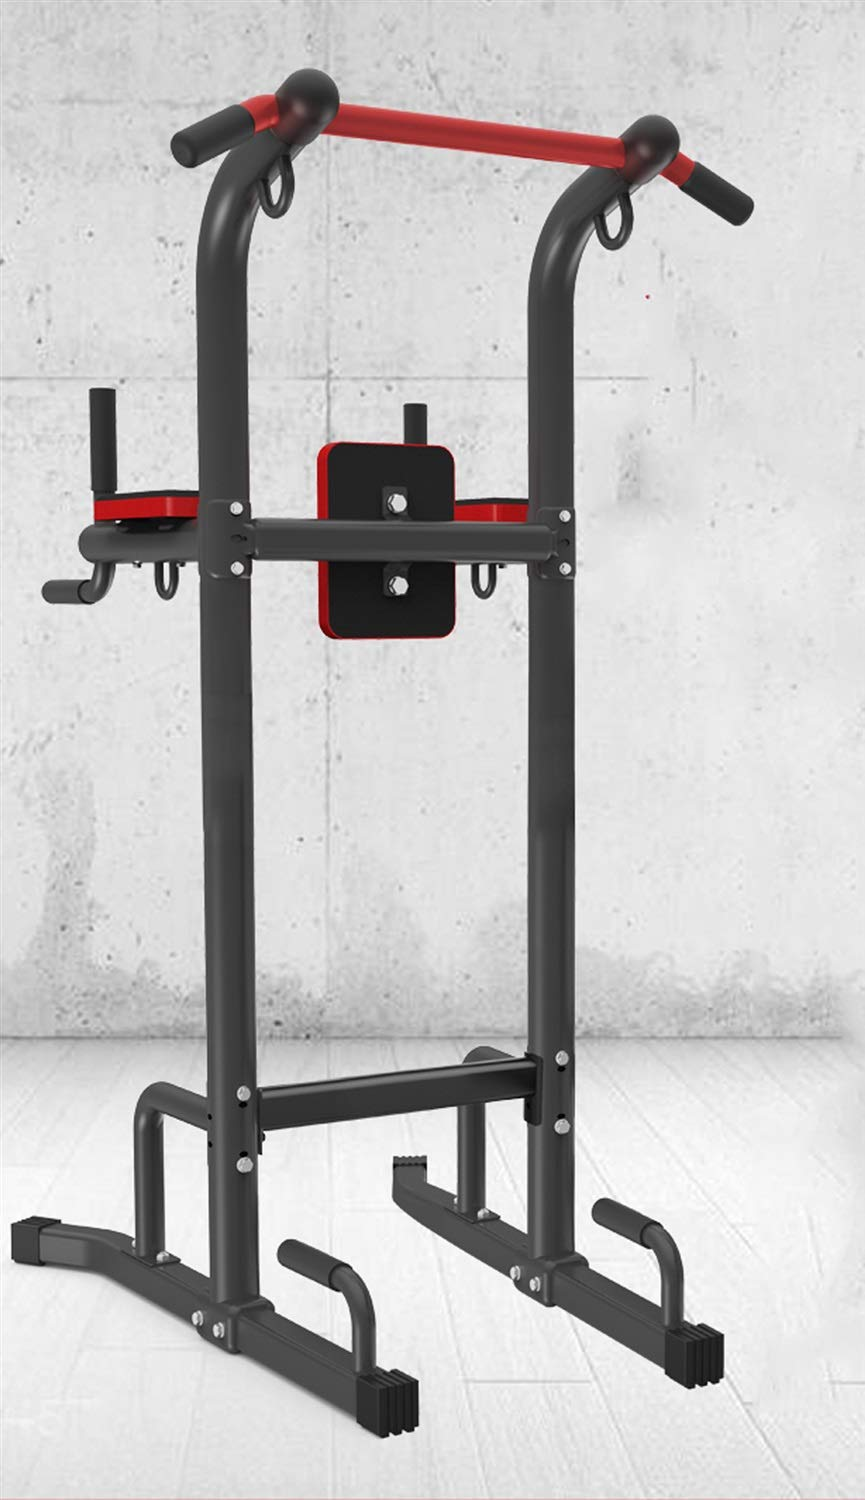 Pull-ups Multi-Functional Fitness Equipment Home Sports Goods Horizontal Bars Parallel Bars by Baianju